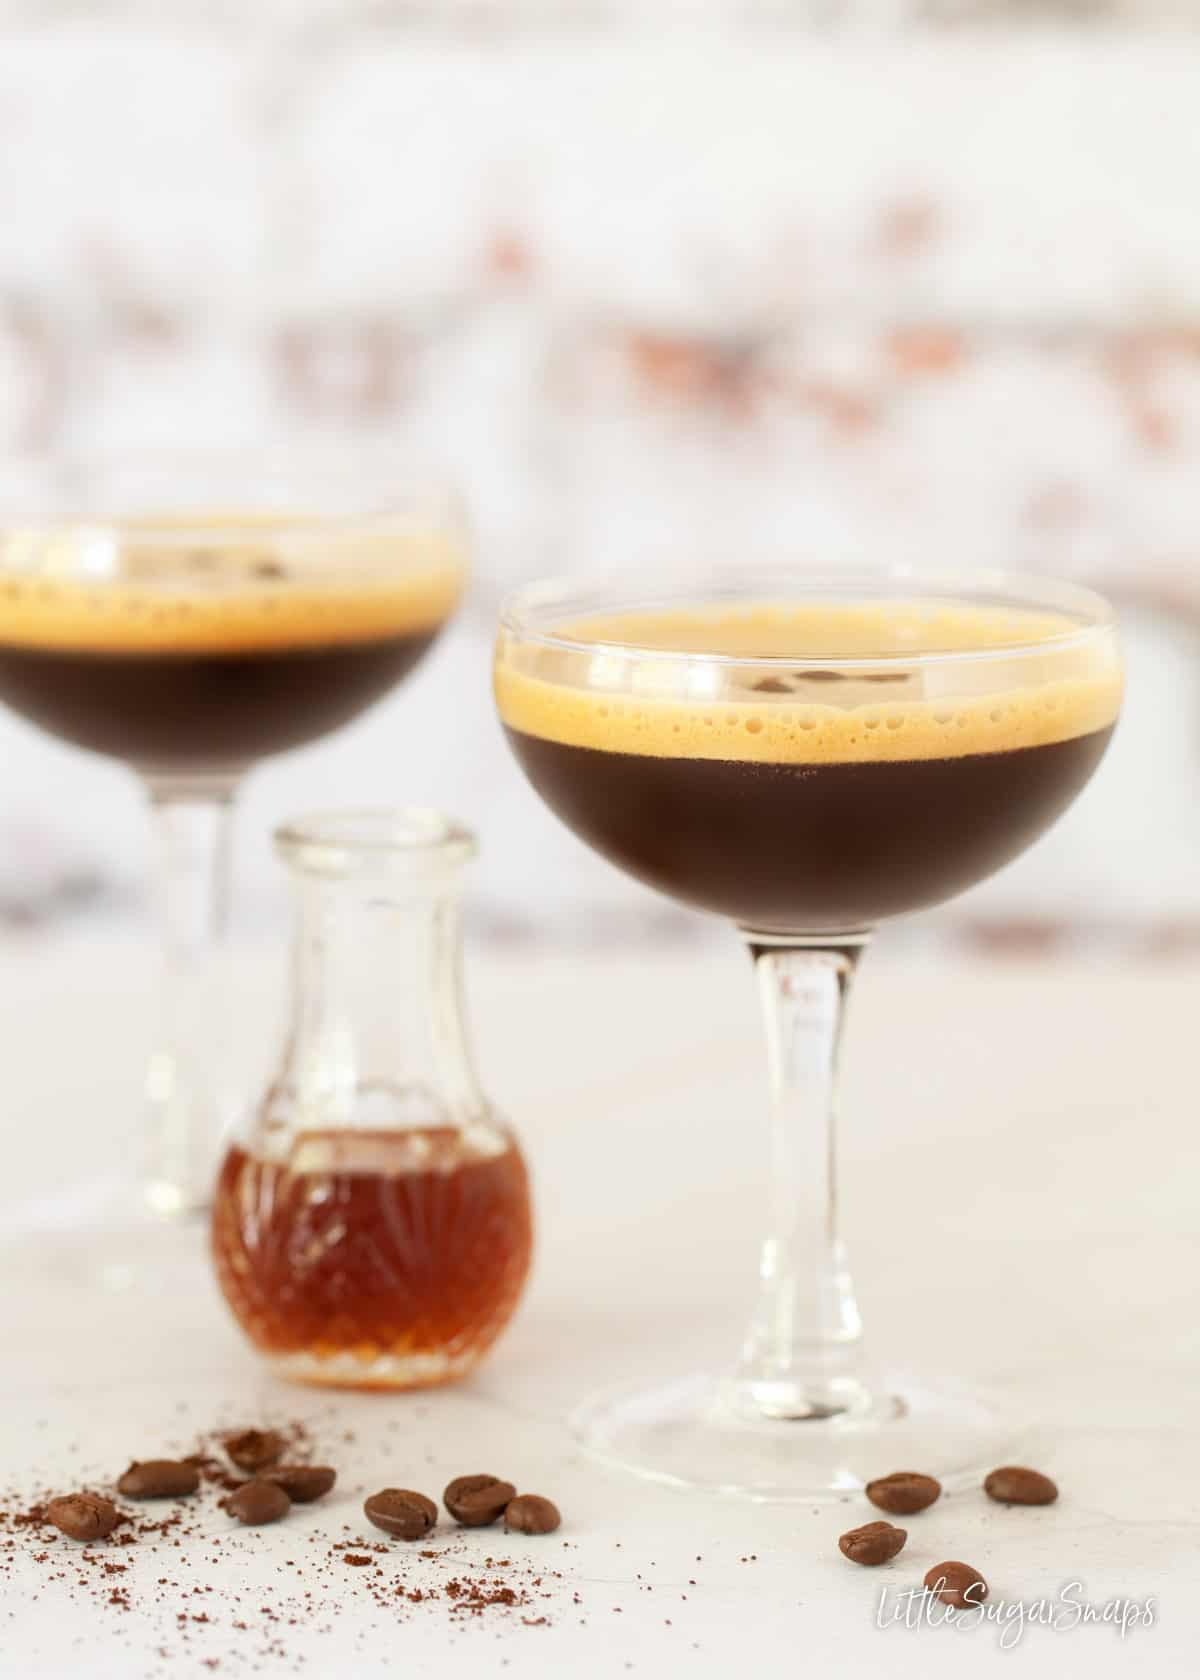 Glasses of caffè shakerato with a bottle of demerara sugar syrup